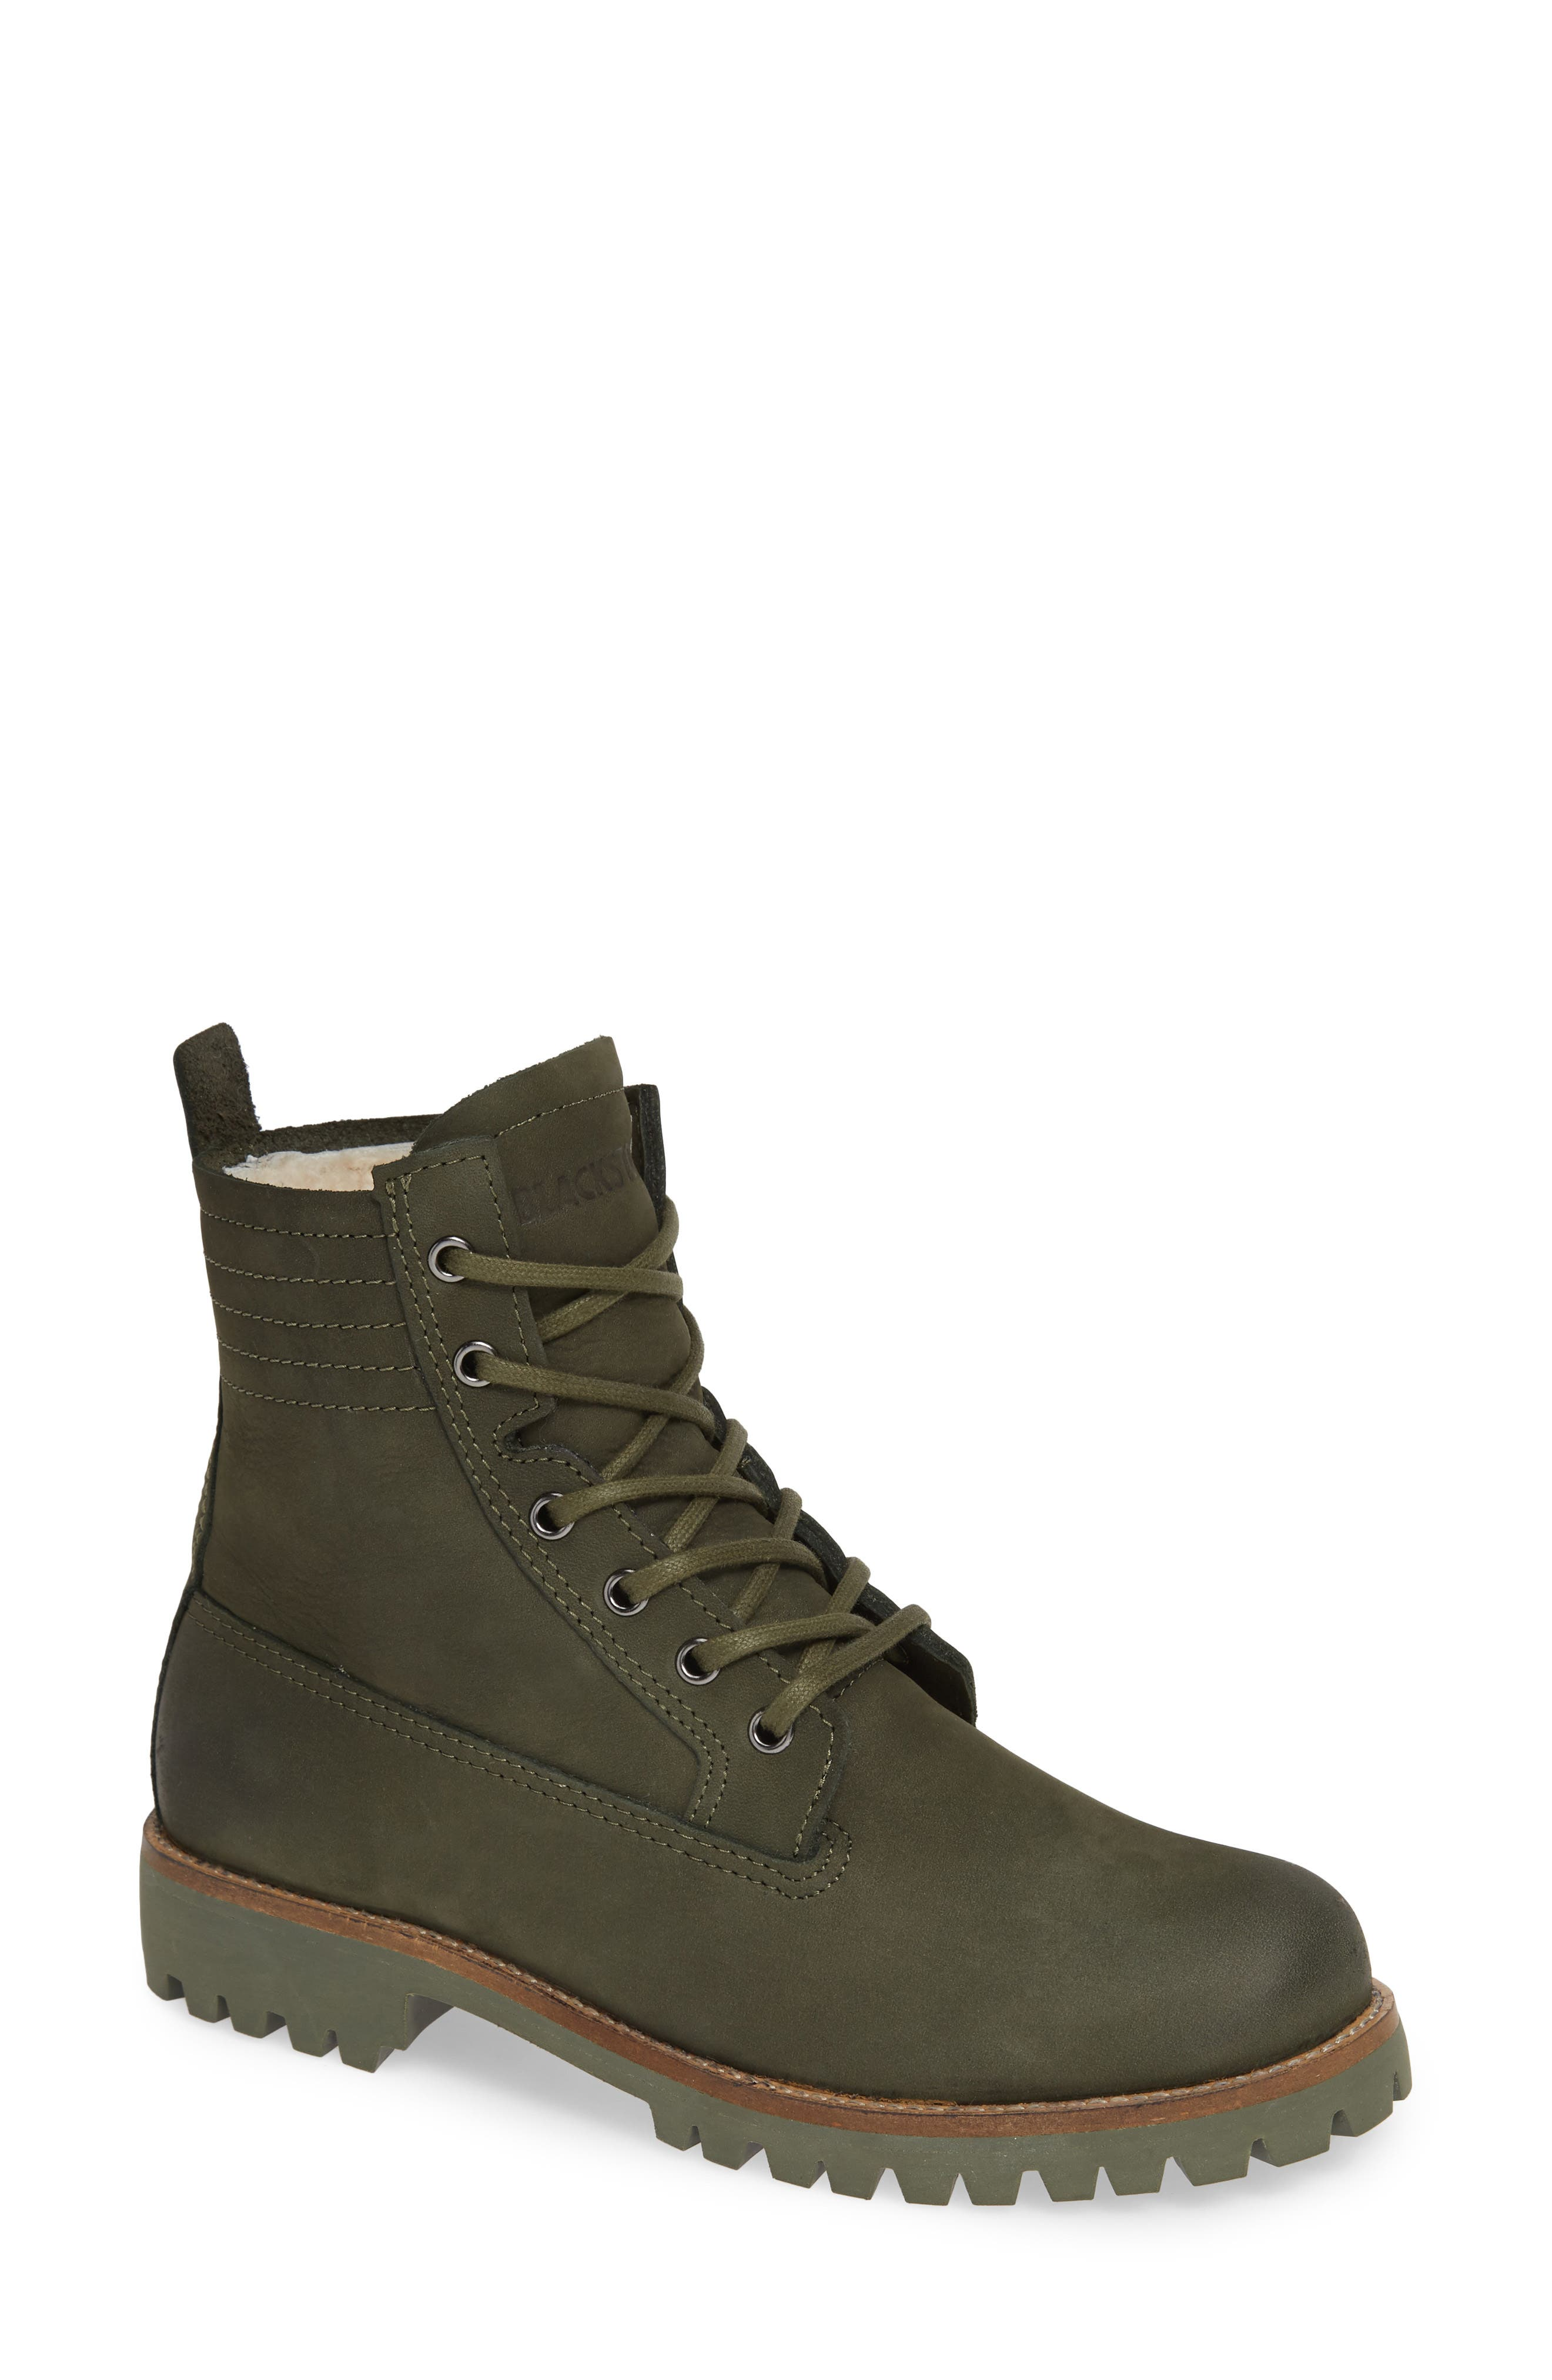 Blackstone Ol22 Lace-Up Boot With Genuine Shearling Lining Green